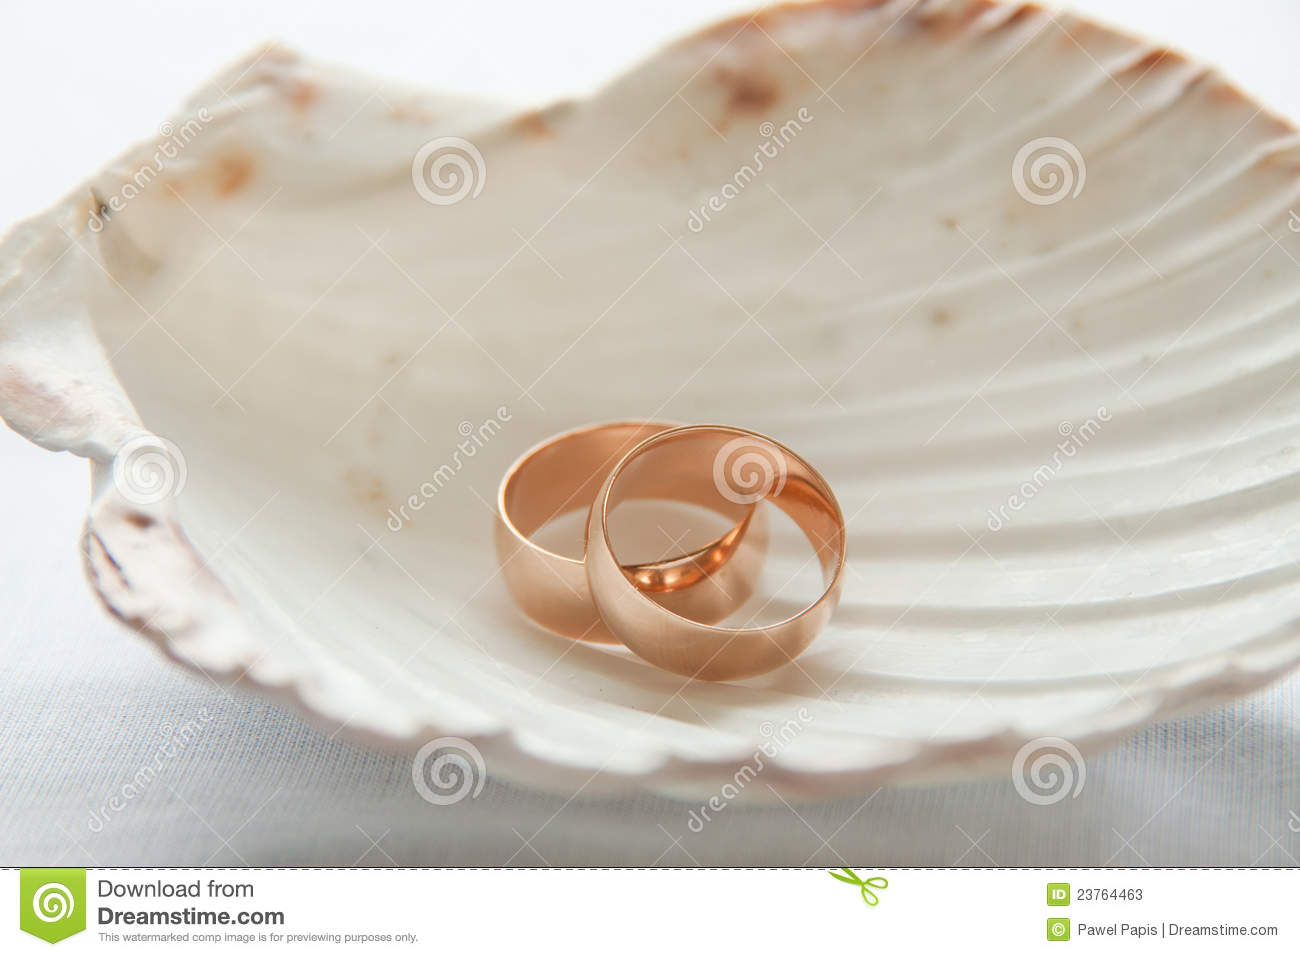 Wedding Rings In Seashell Stock Image Image Of Decoration. Assassins Creed Wedding Rings. Phantom Jewels Engagement Rings. Bee Rings. Rin Engagement Rings. Inscription Wedding Rings. 6 Stone Wedding Rings. Party Rings. Skyrim Engagement Rings